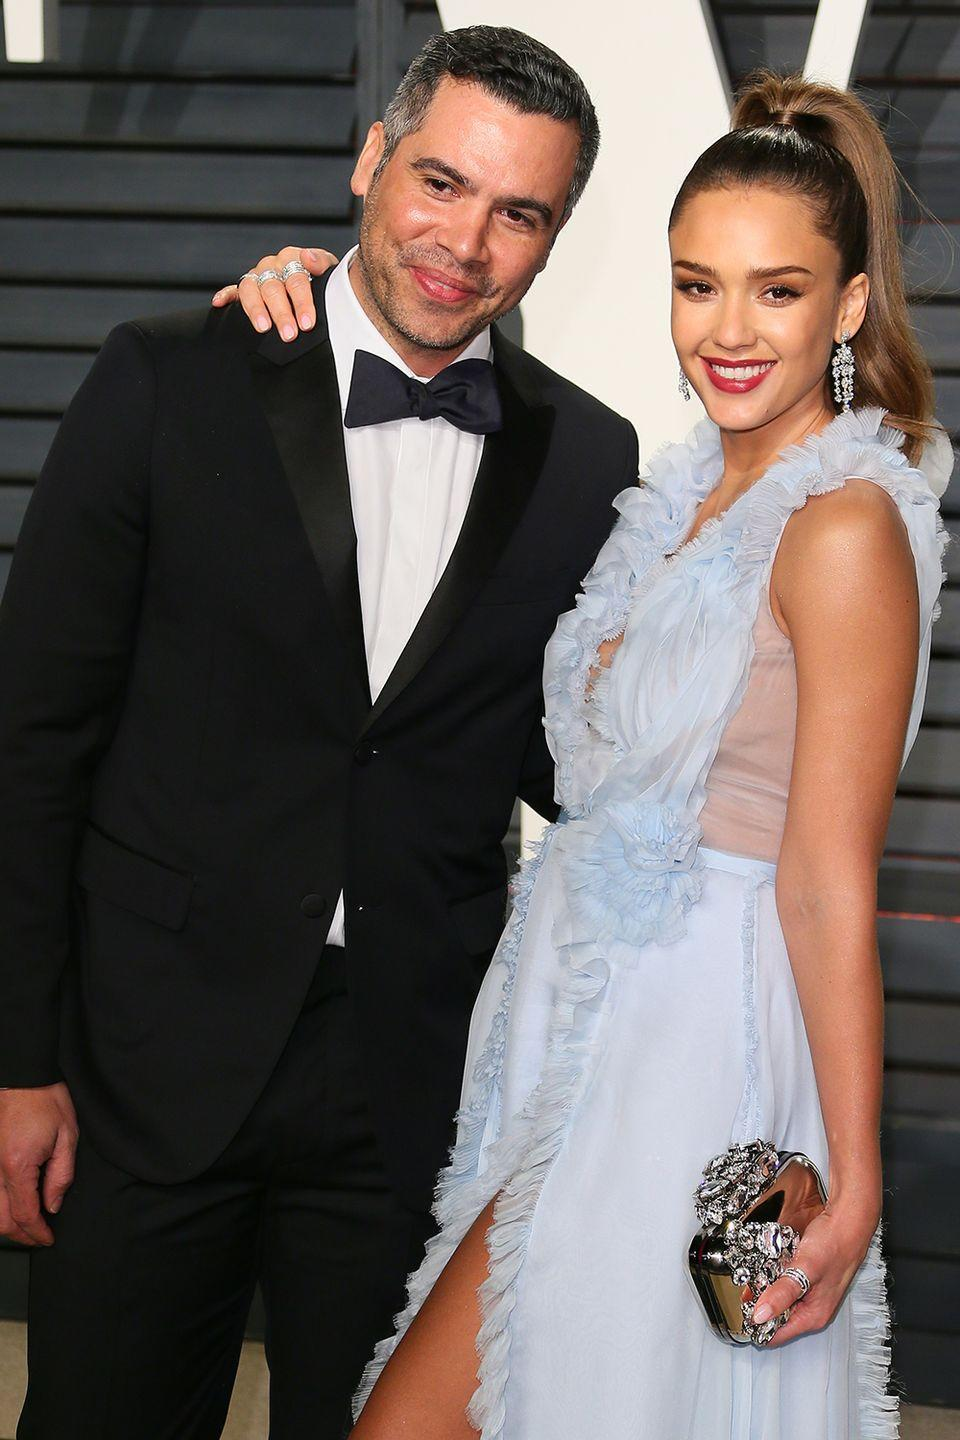 """<p><strong>How long they've been together:</strong> They got together shortly after meeting on the set of <em>Fantastic Four</em> (Alba was starring as Sue Storm and Warren was working as a production assistant) in 2004 and wed in a courthouse ceremony in Beverly Hills in 2008. """"Right after I met [Cash], I called my best friend and was like, 'I met this guy and I feel like I've known him forever and I'm going to know him for the rest of my life,'"""" she told <em>Cosmopolitan</em> in 2010.<br></p><p><strong>Why you forgot they're together:</strong> Despite Alba's A-list status, Warren is more of a behind-the-scenes-guy.<br></p>"""